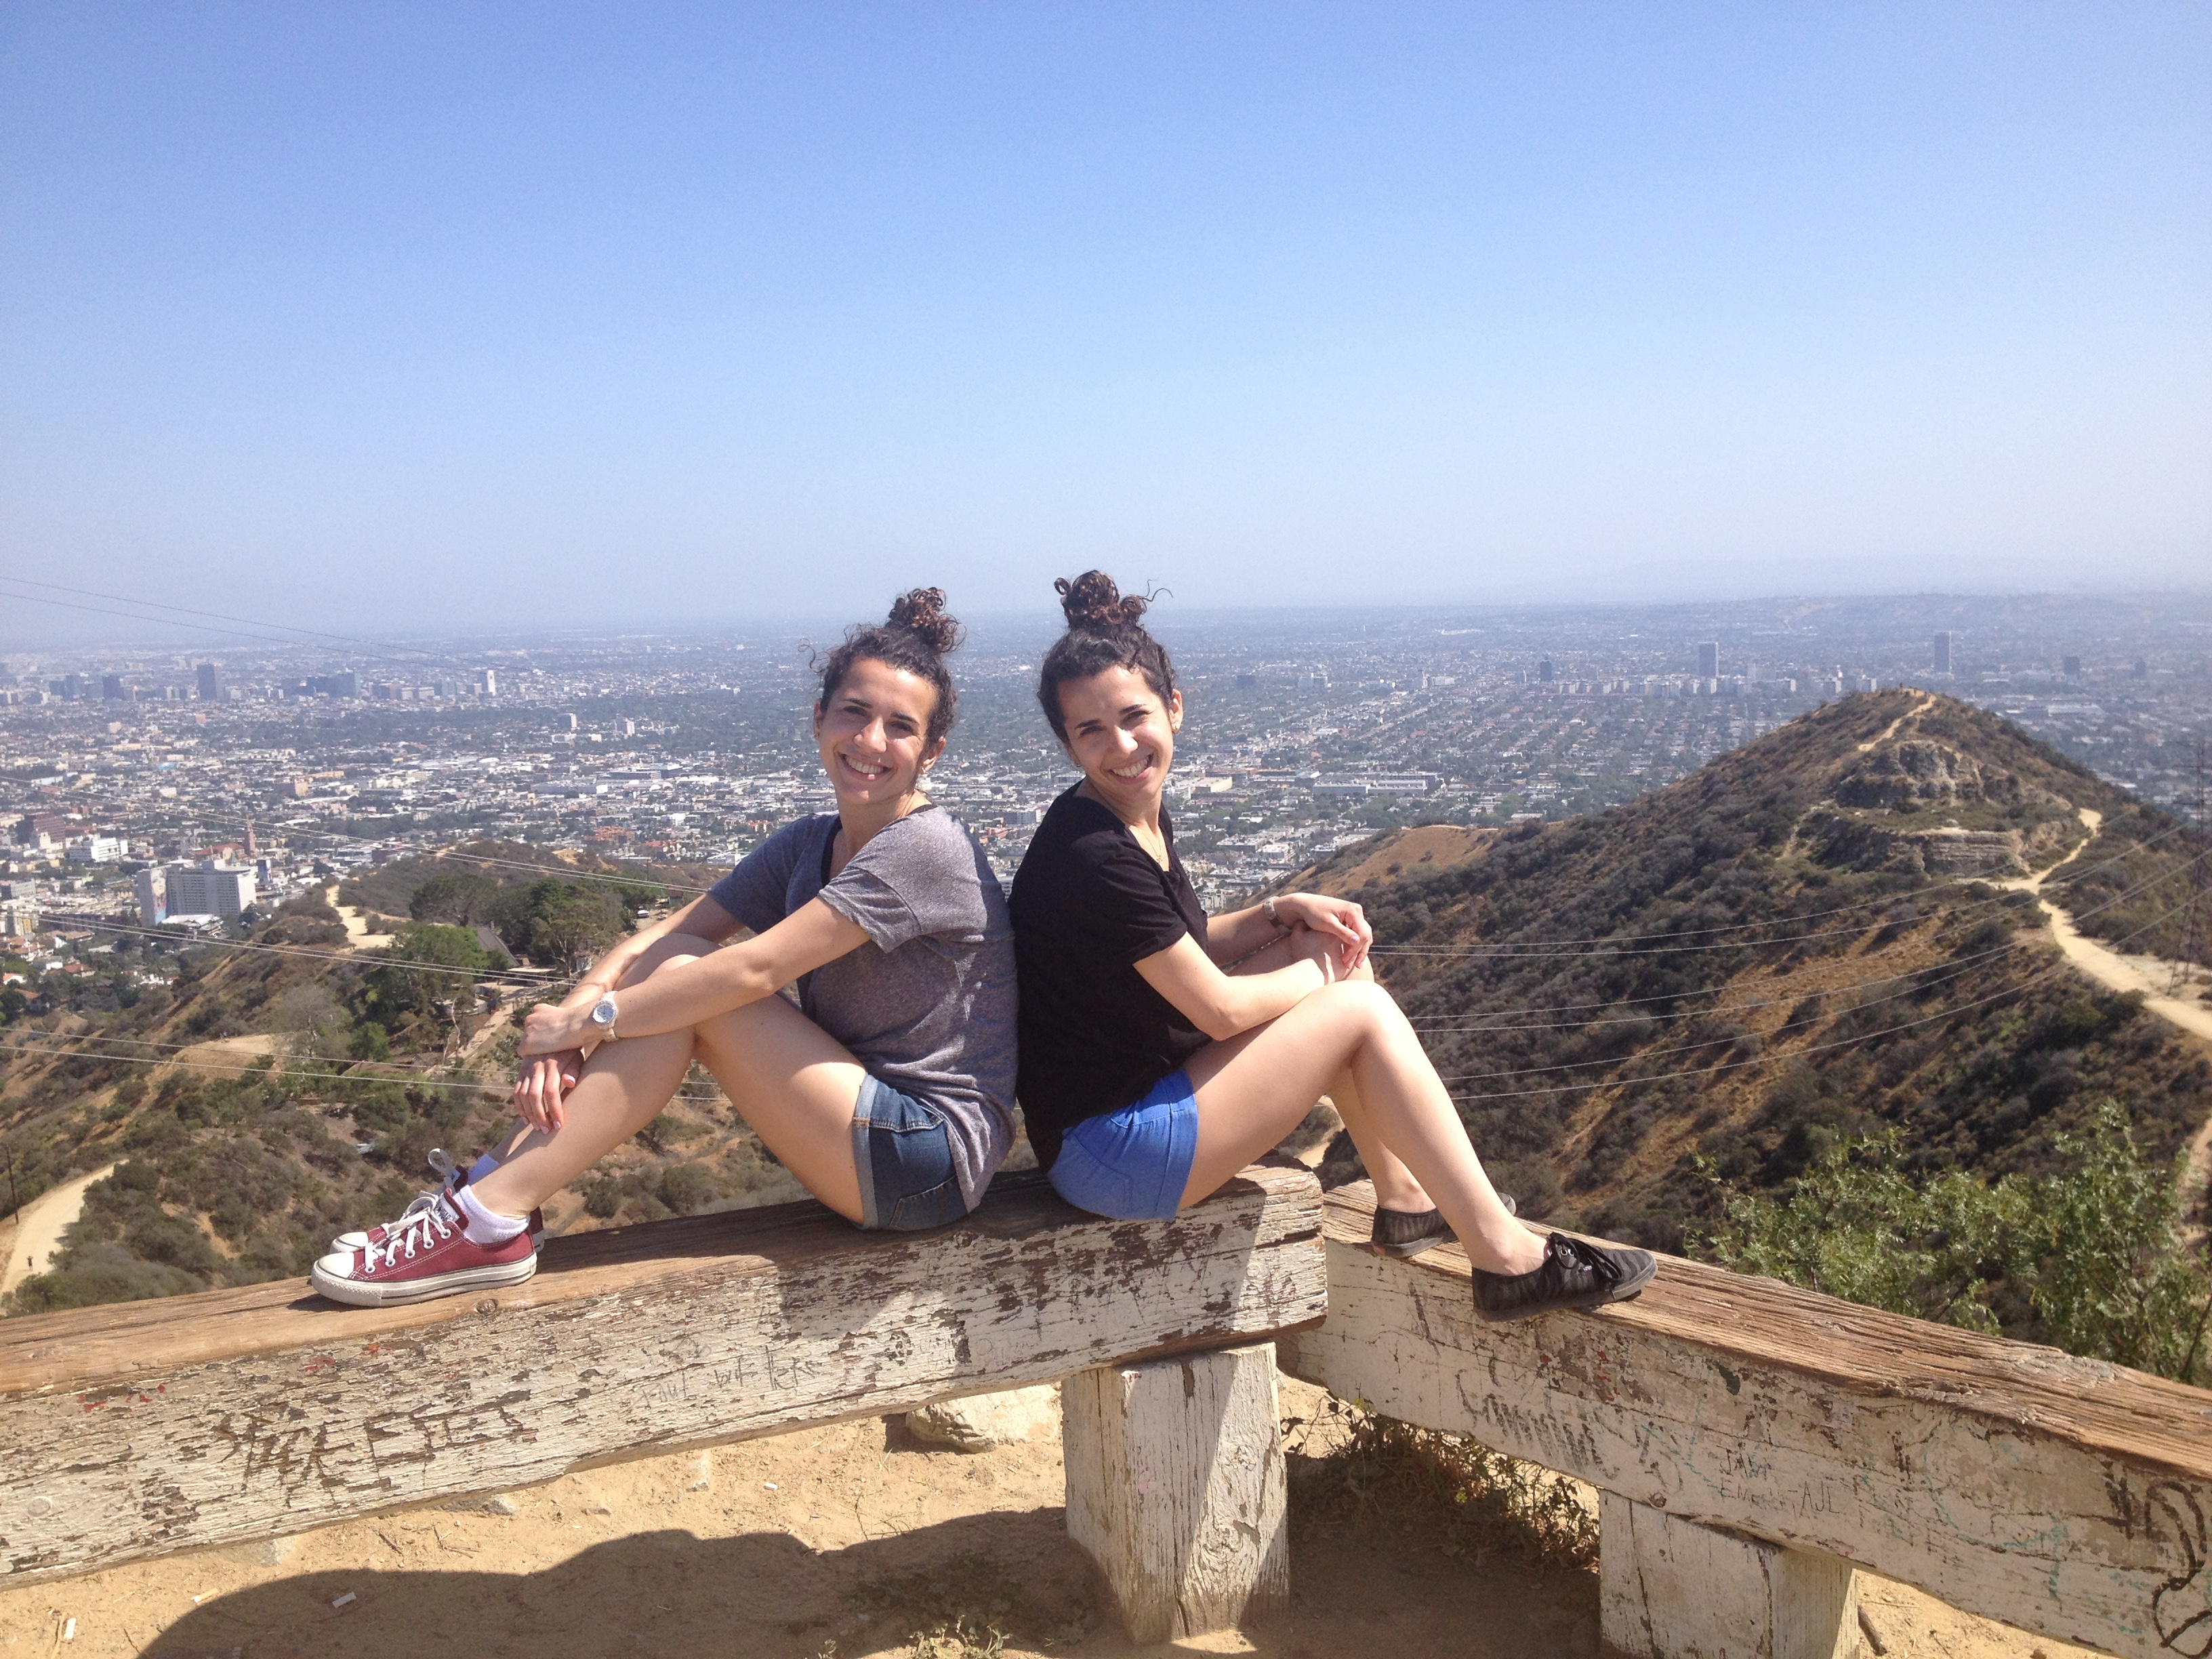 Lindsey and Alison Schwartz in Runyon Canyon, Los Angeles